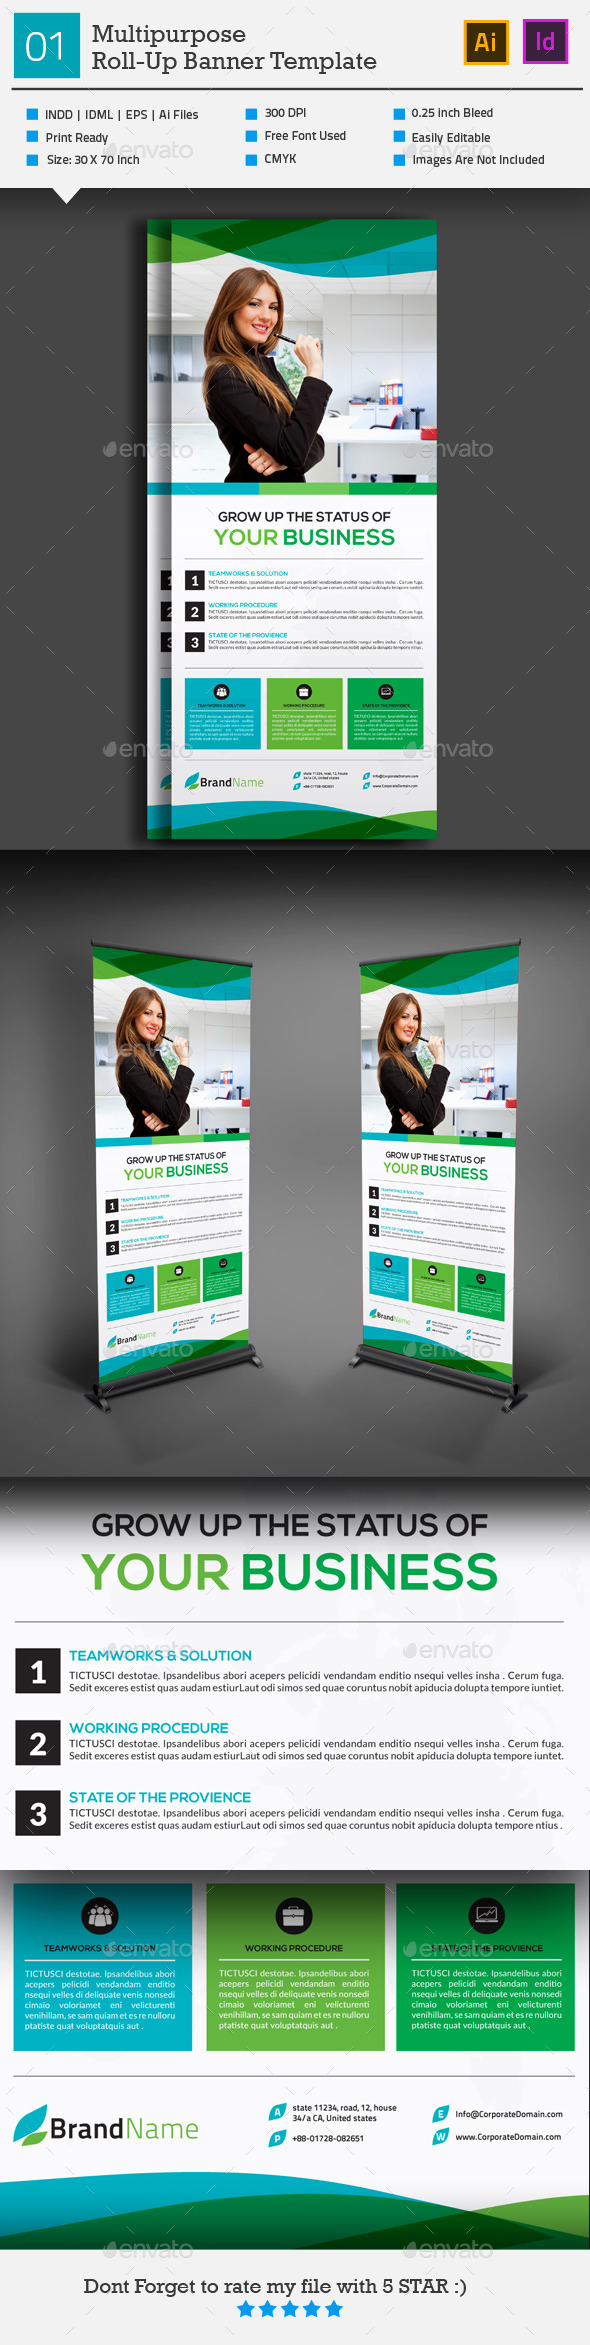 GraphicRiver Multipurpose Roll-Up Banner 01 10317039